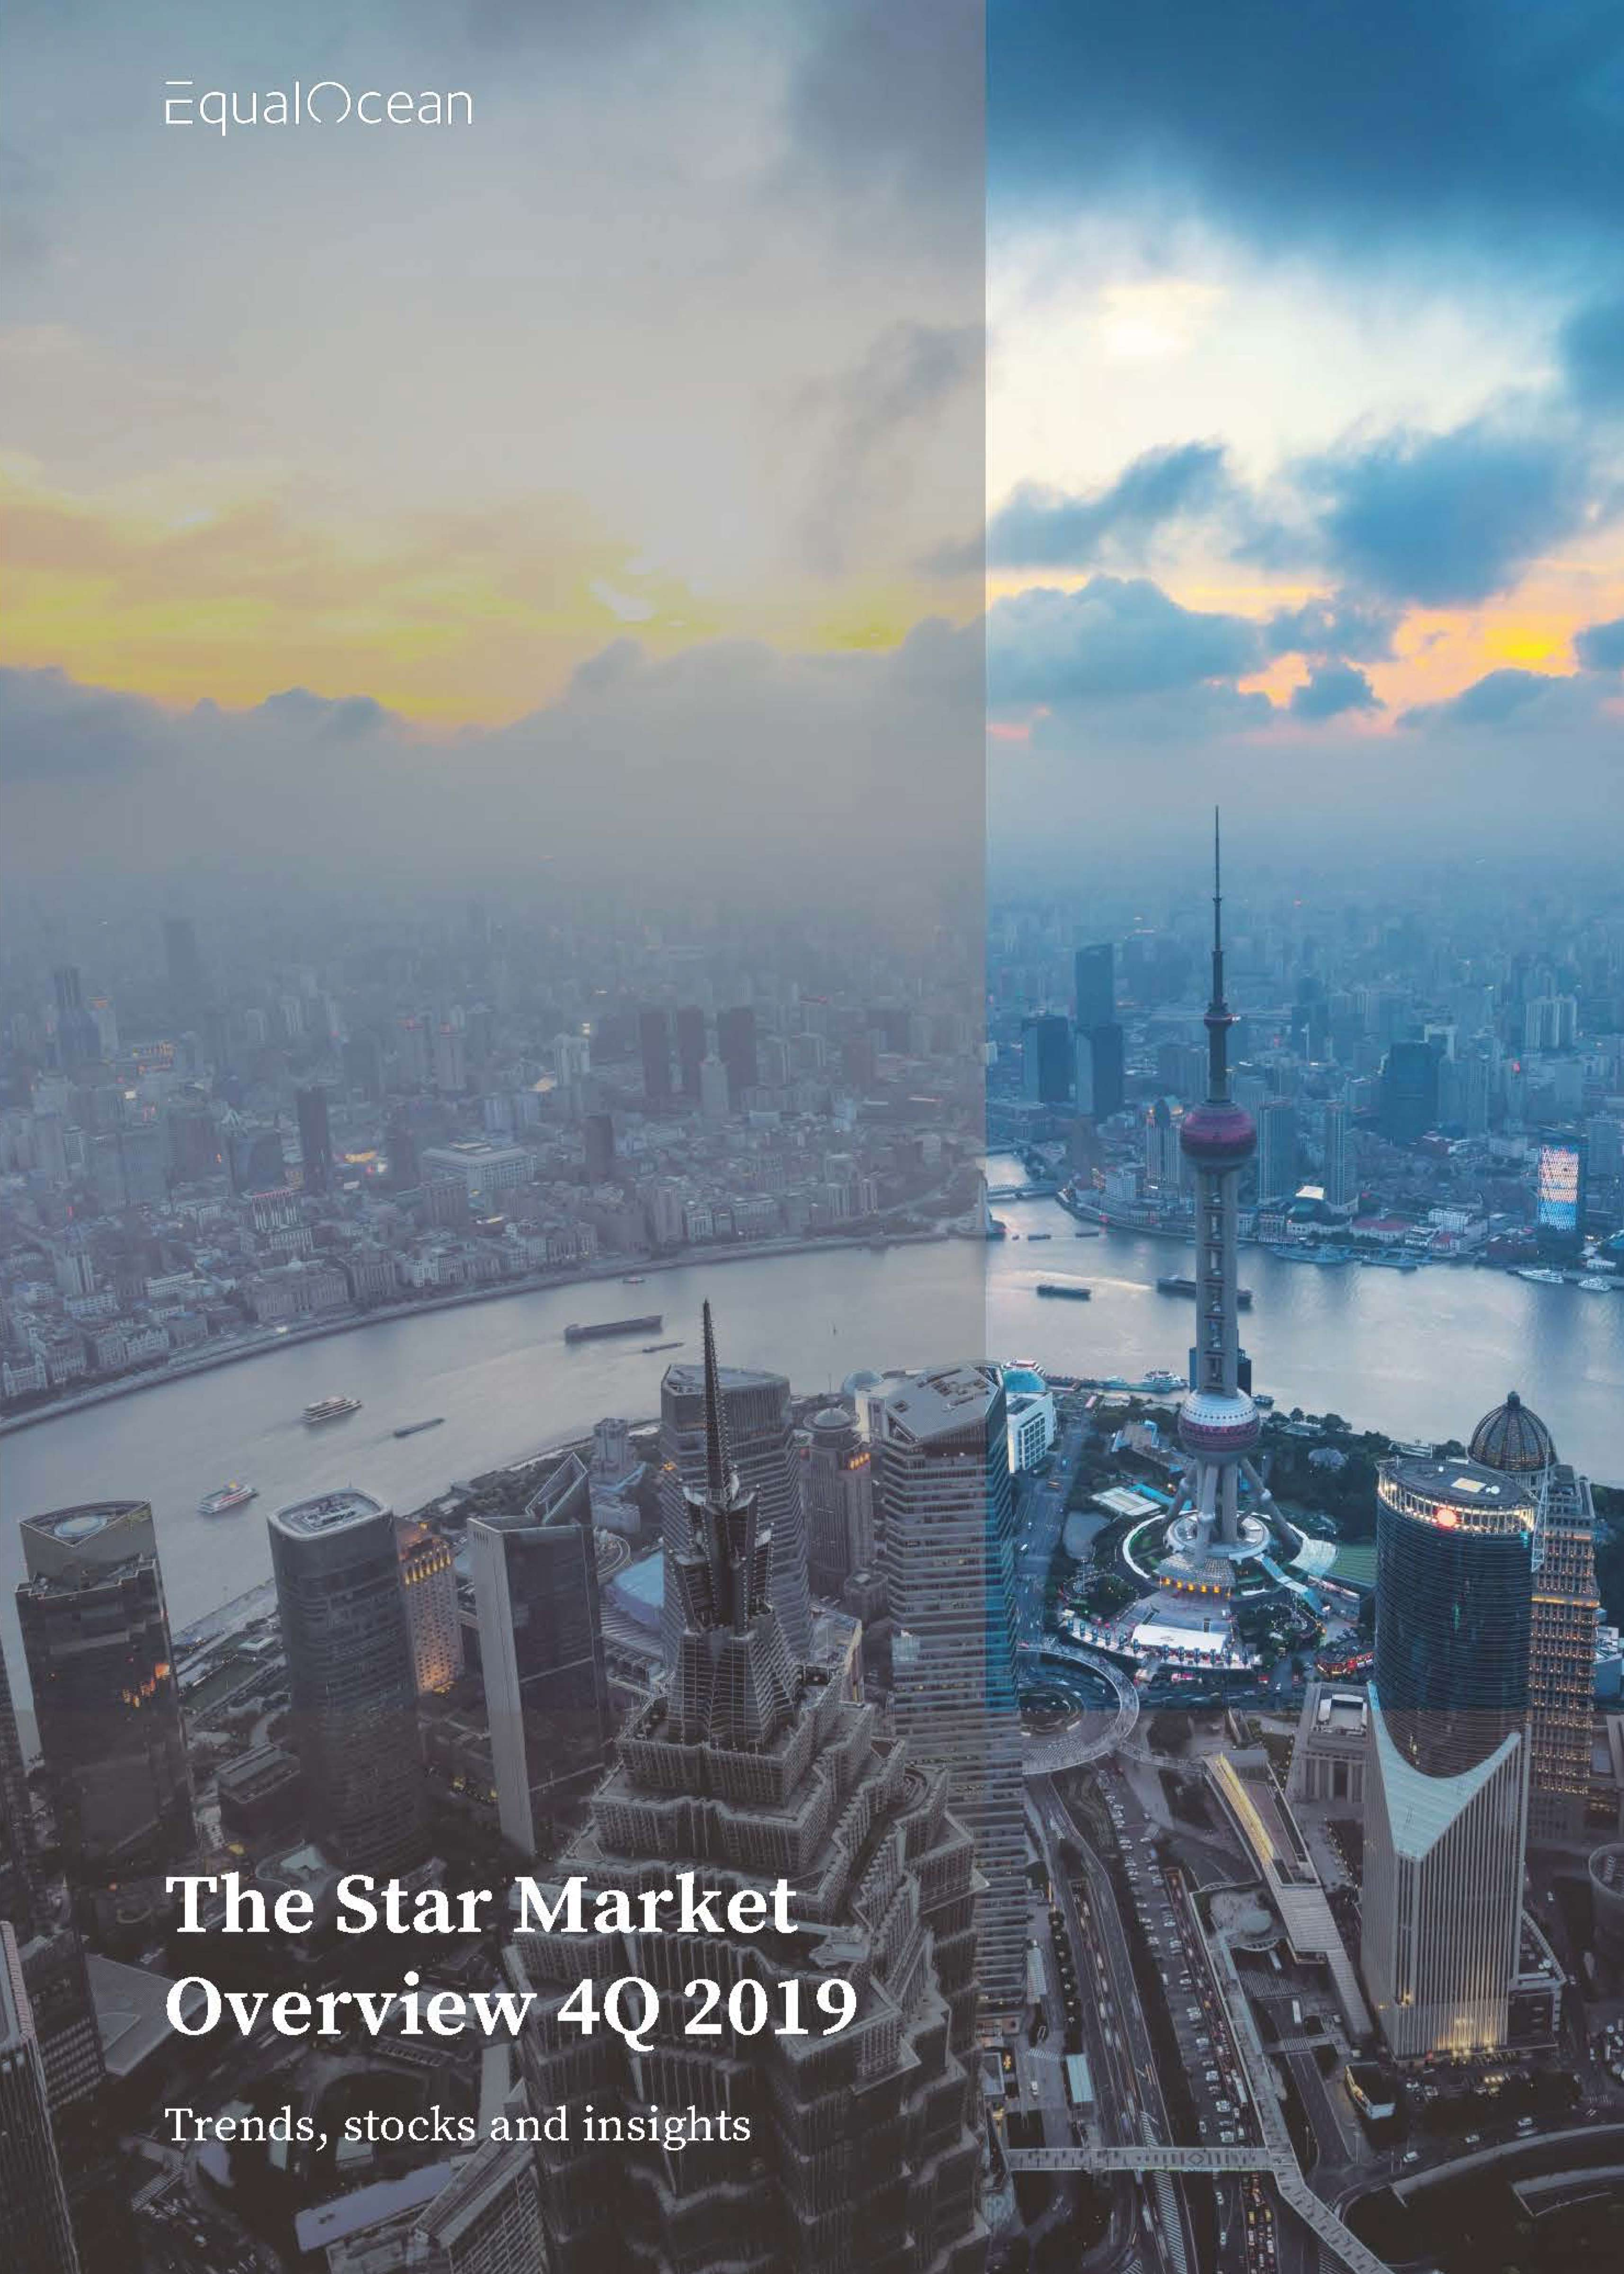 The Star Market Overview 4Q 2019